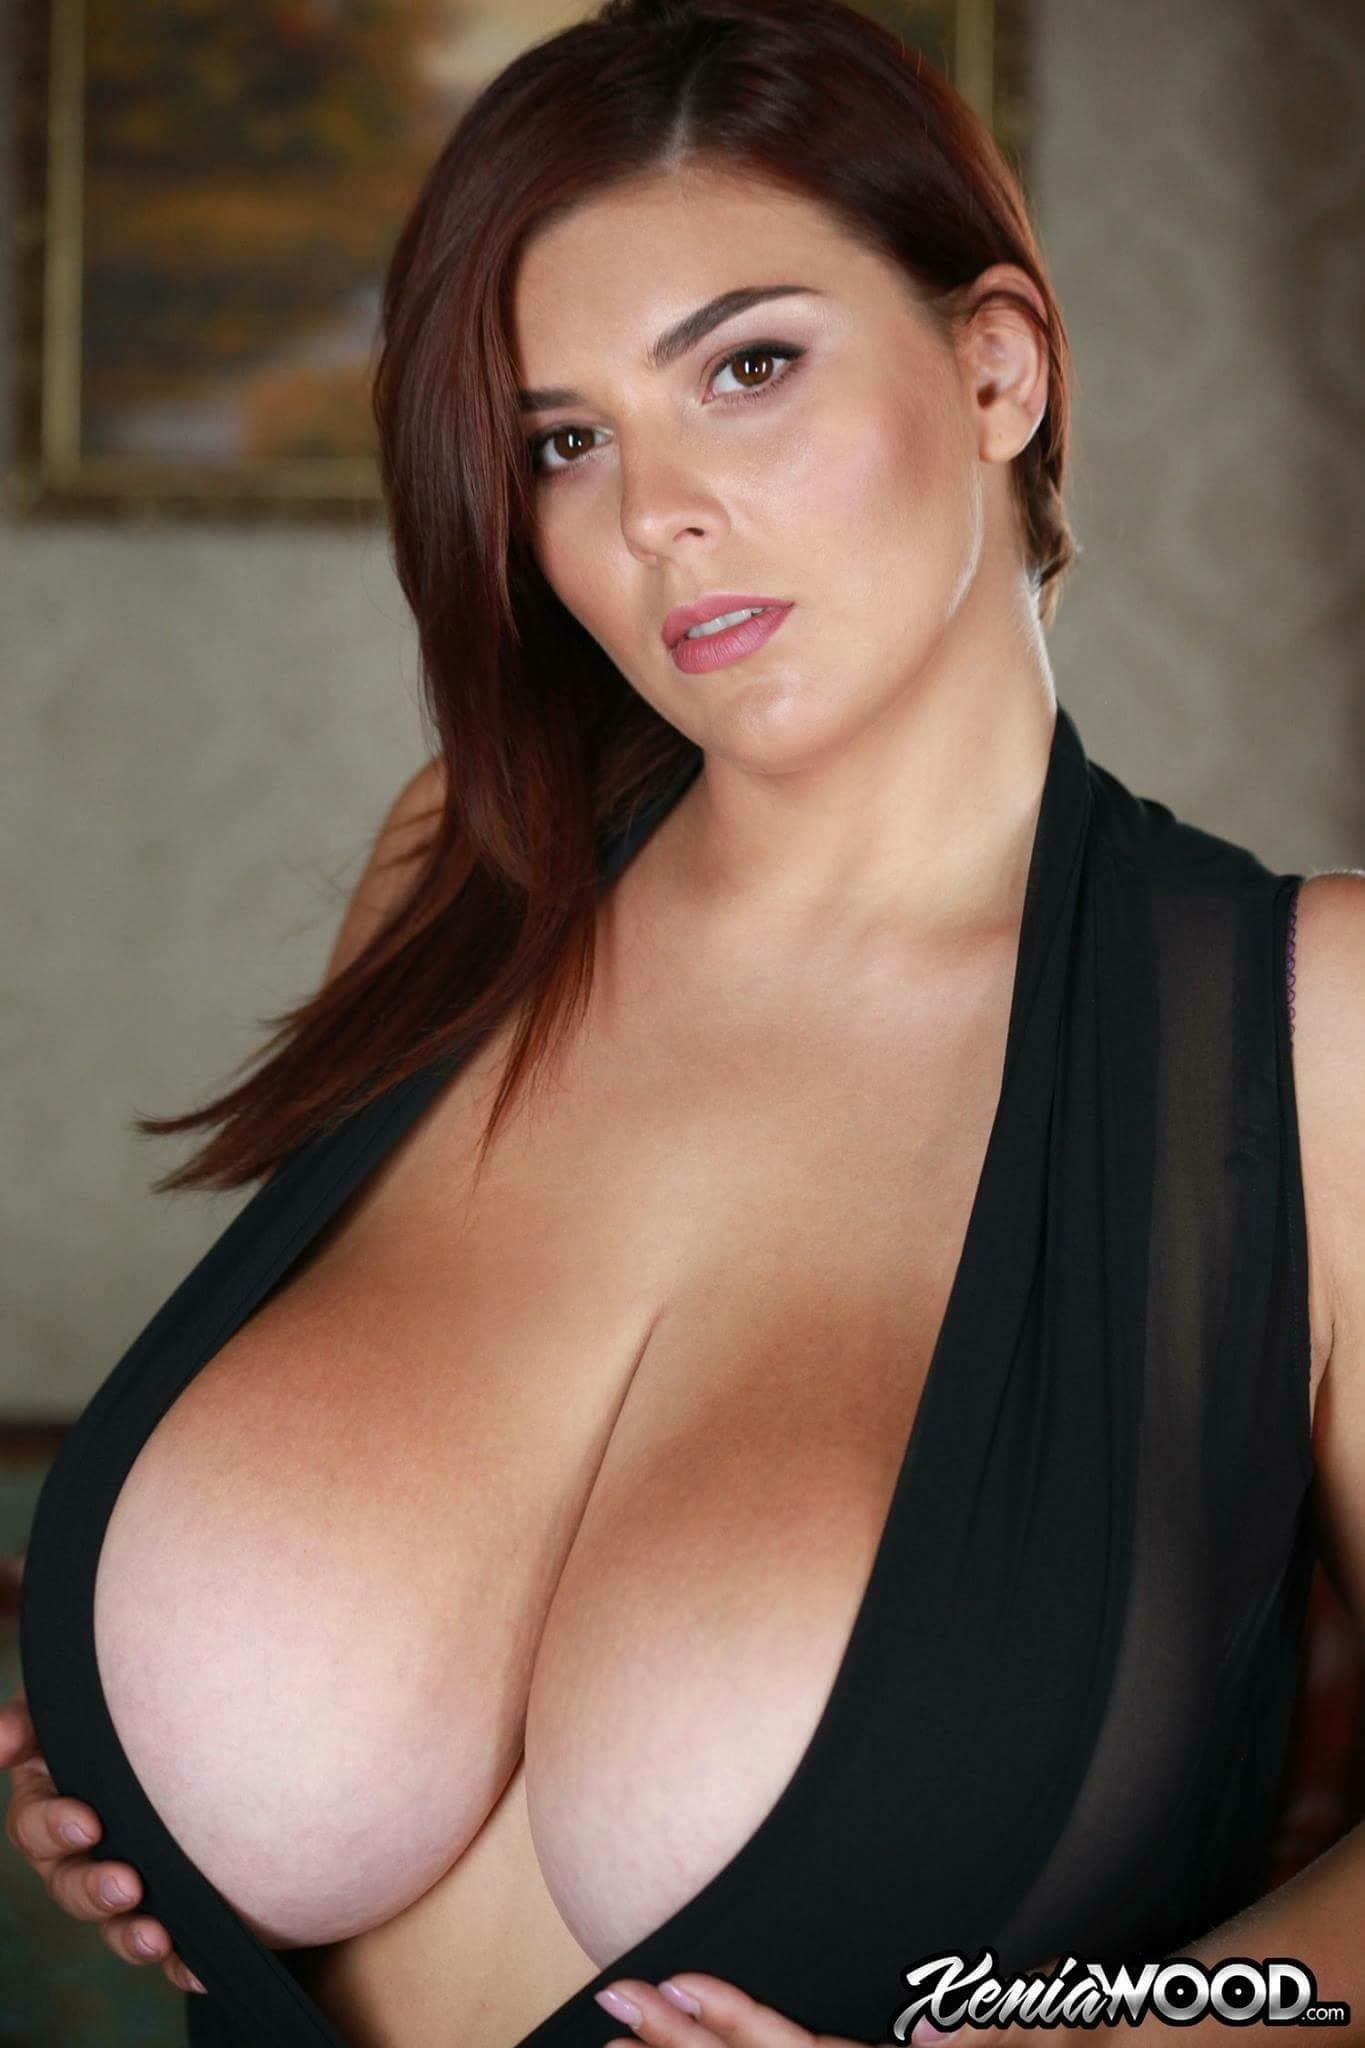 xenia wood | clothed and sexy | pinterest | boobs, curvy and big